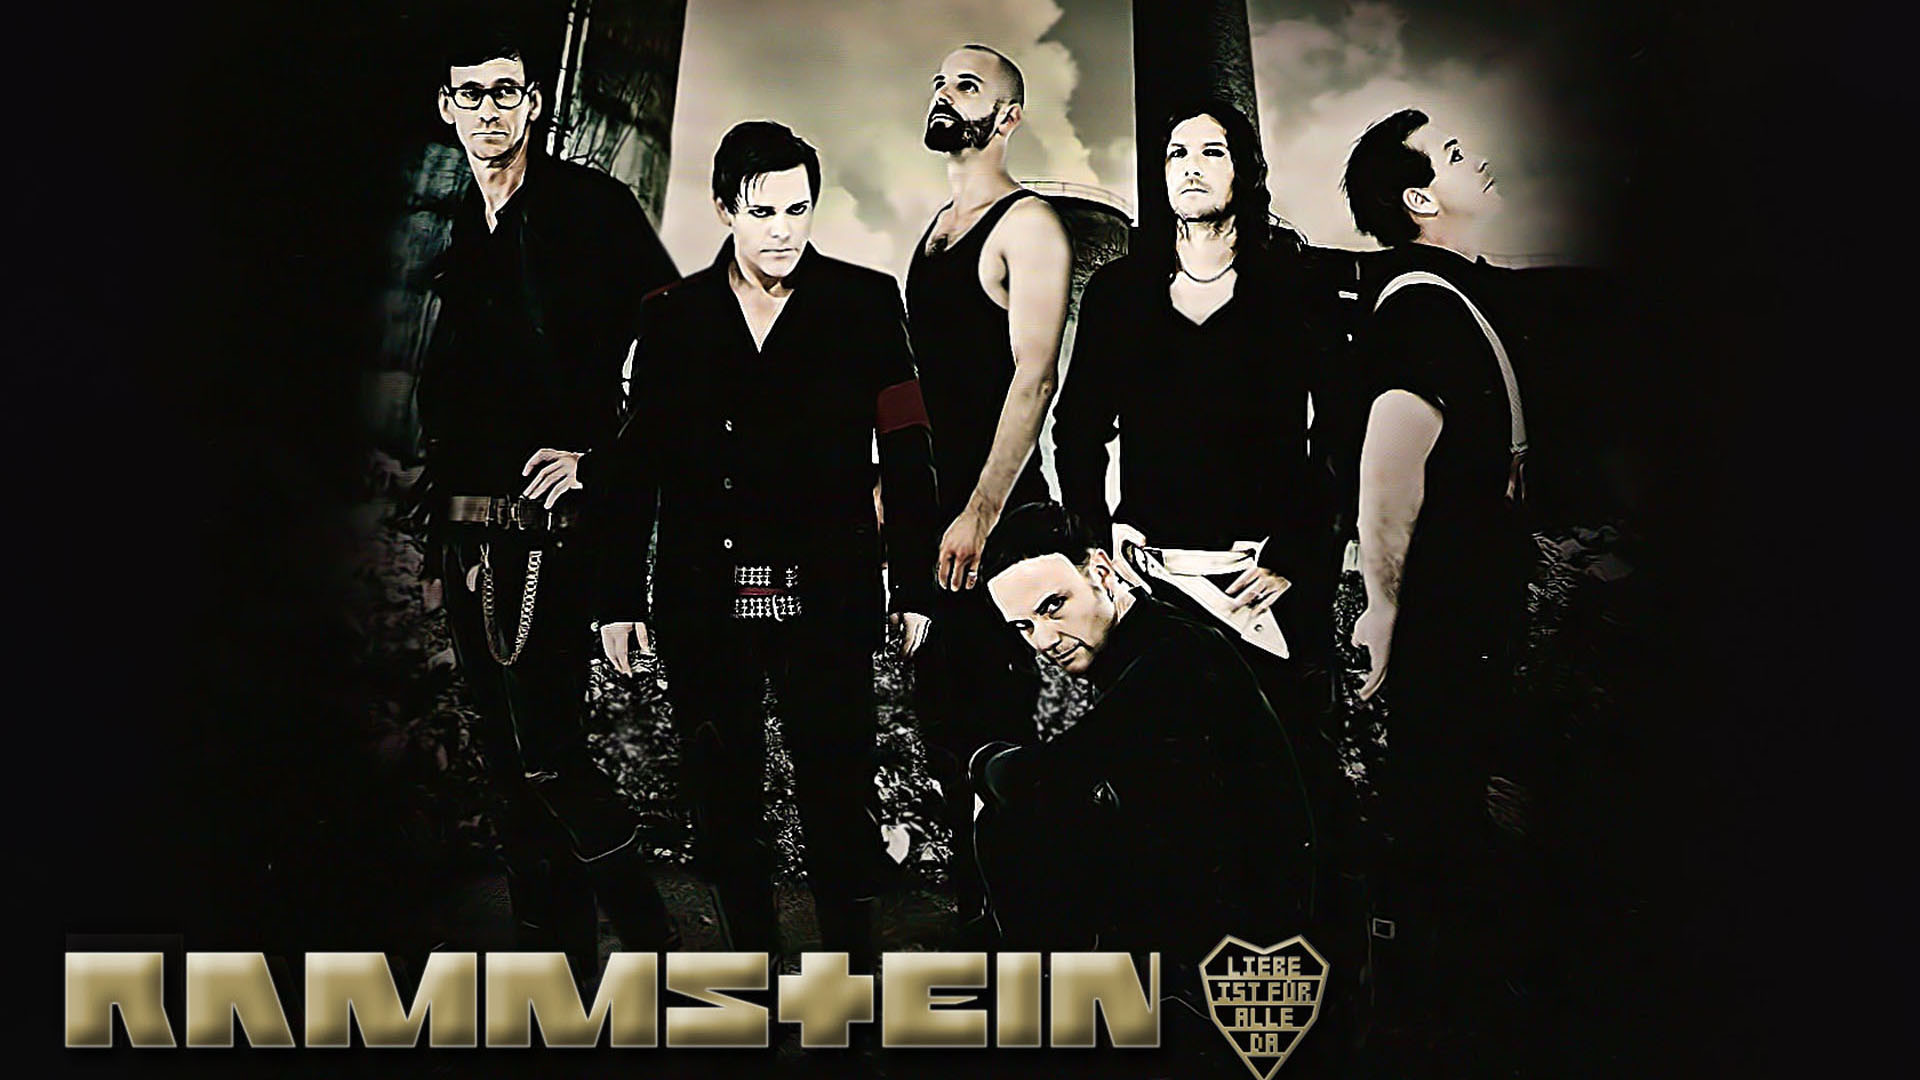 1920x1080 view image. Found on: rammstein-wallpapers-hd/